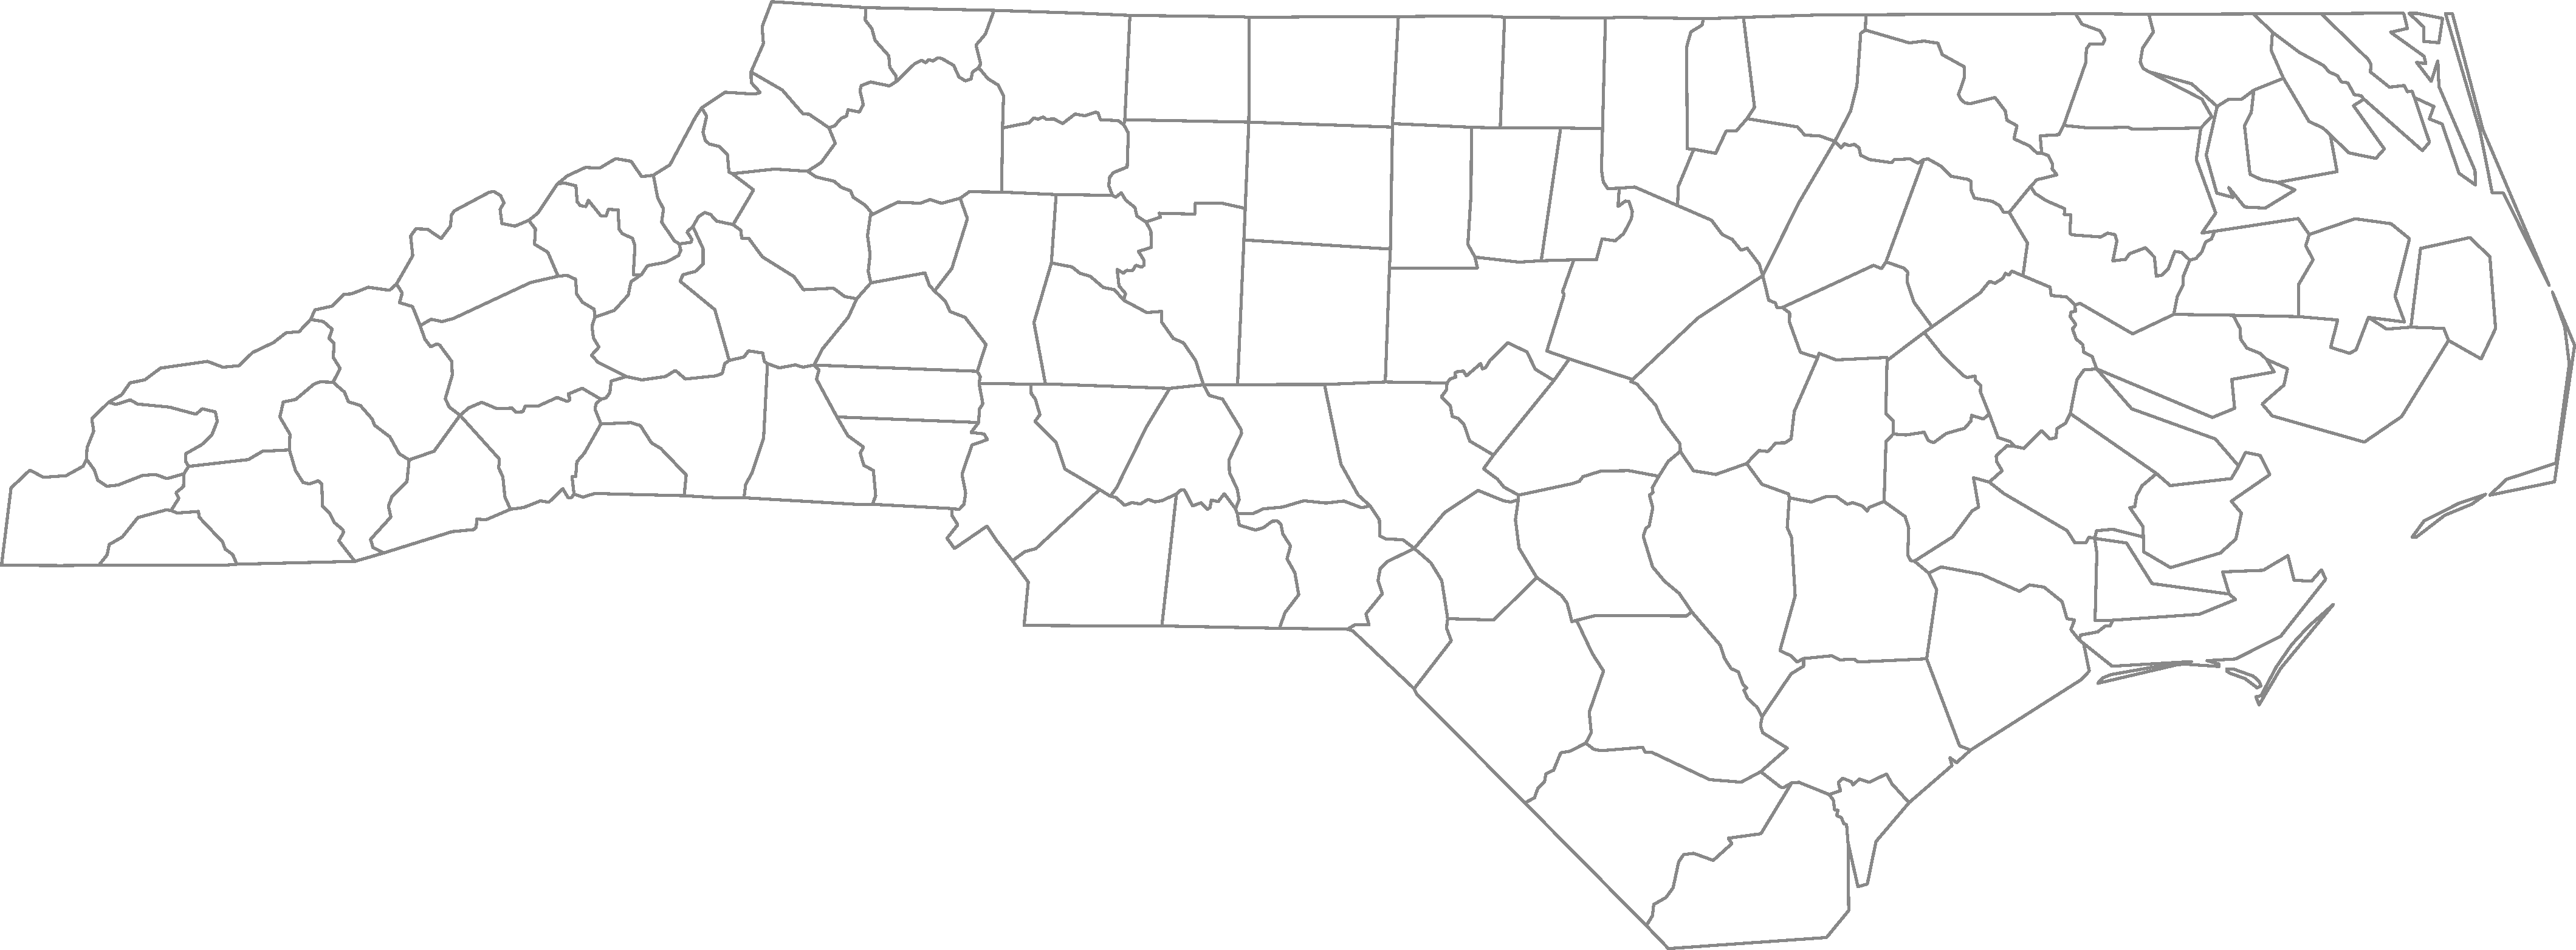 graphic relating to North Carolina County Map Printable known as Dwelling - North Carolinas Electrical Cooperatives North